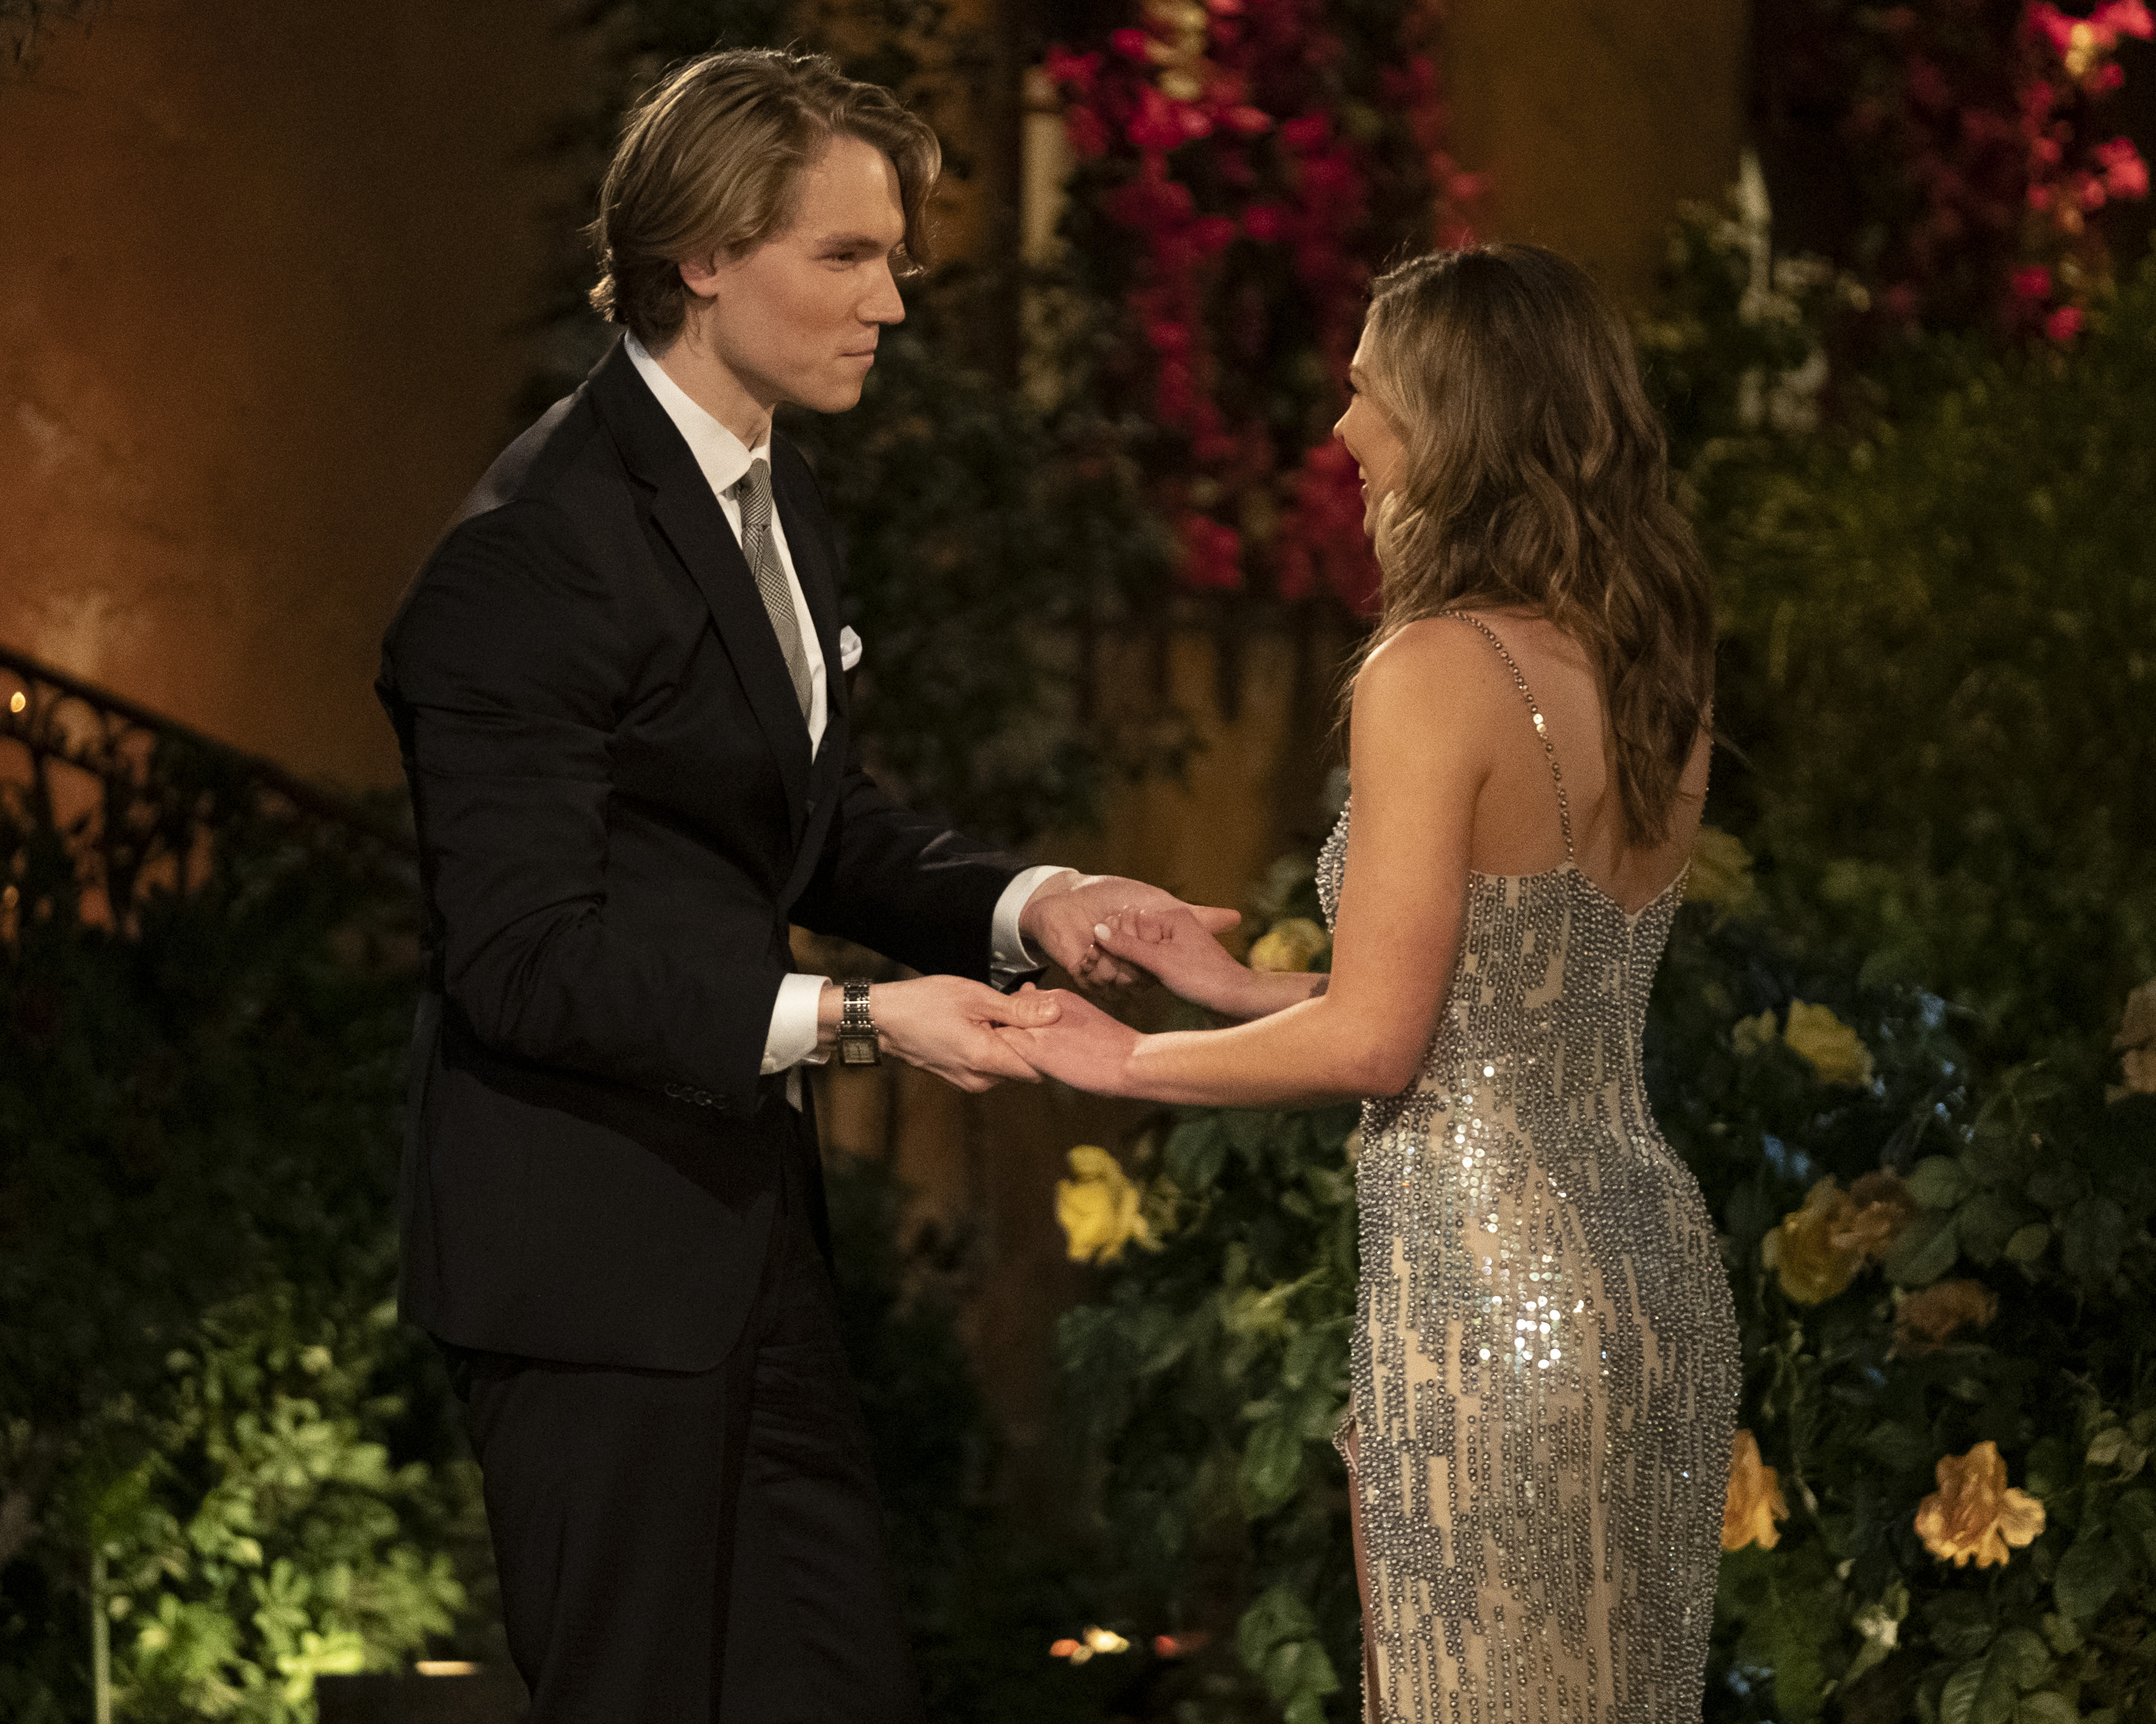 <p>John Paul Jones is looking for the real deal. When John Paul Jones isn't daydreaming about his future wedding, he enjoys traveling the world and contemplating the meaning of life. Could Hannah be John Paul Jones' future bride? (Image: ABC/John Fleenor)</p>